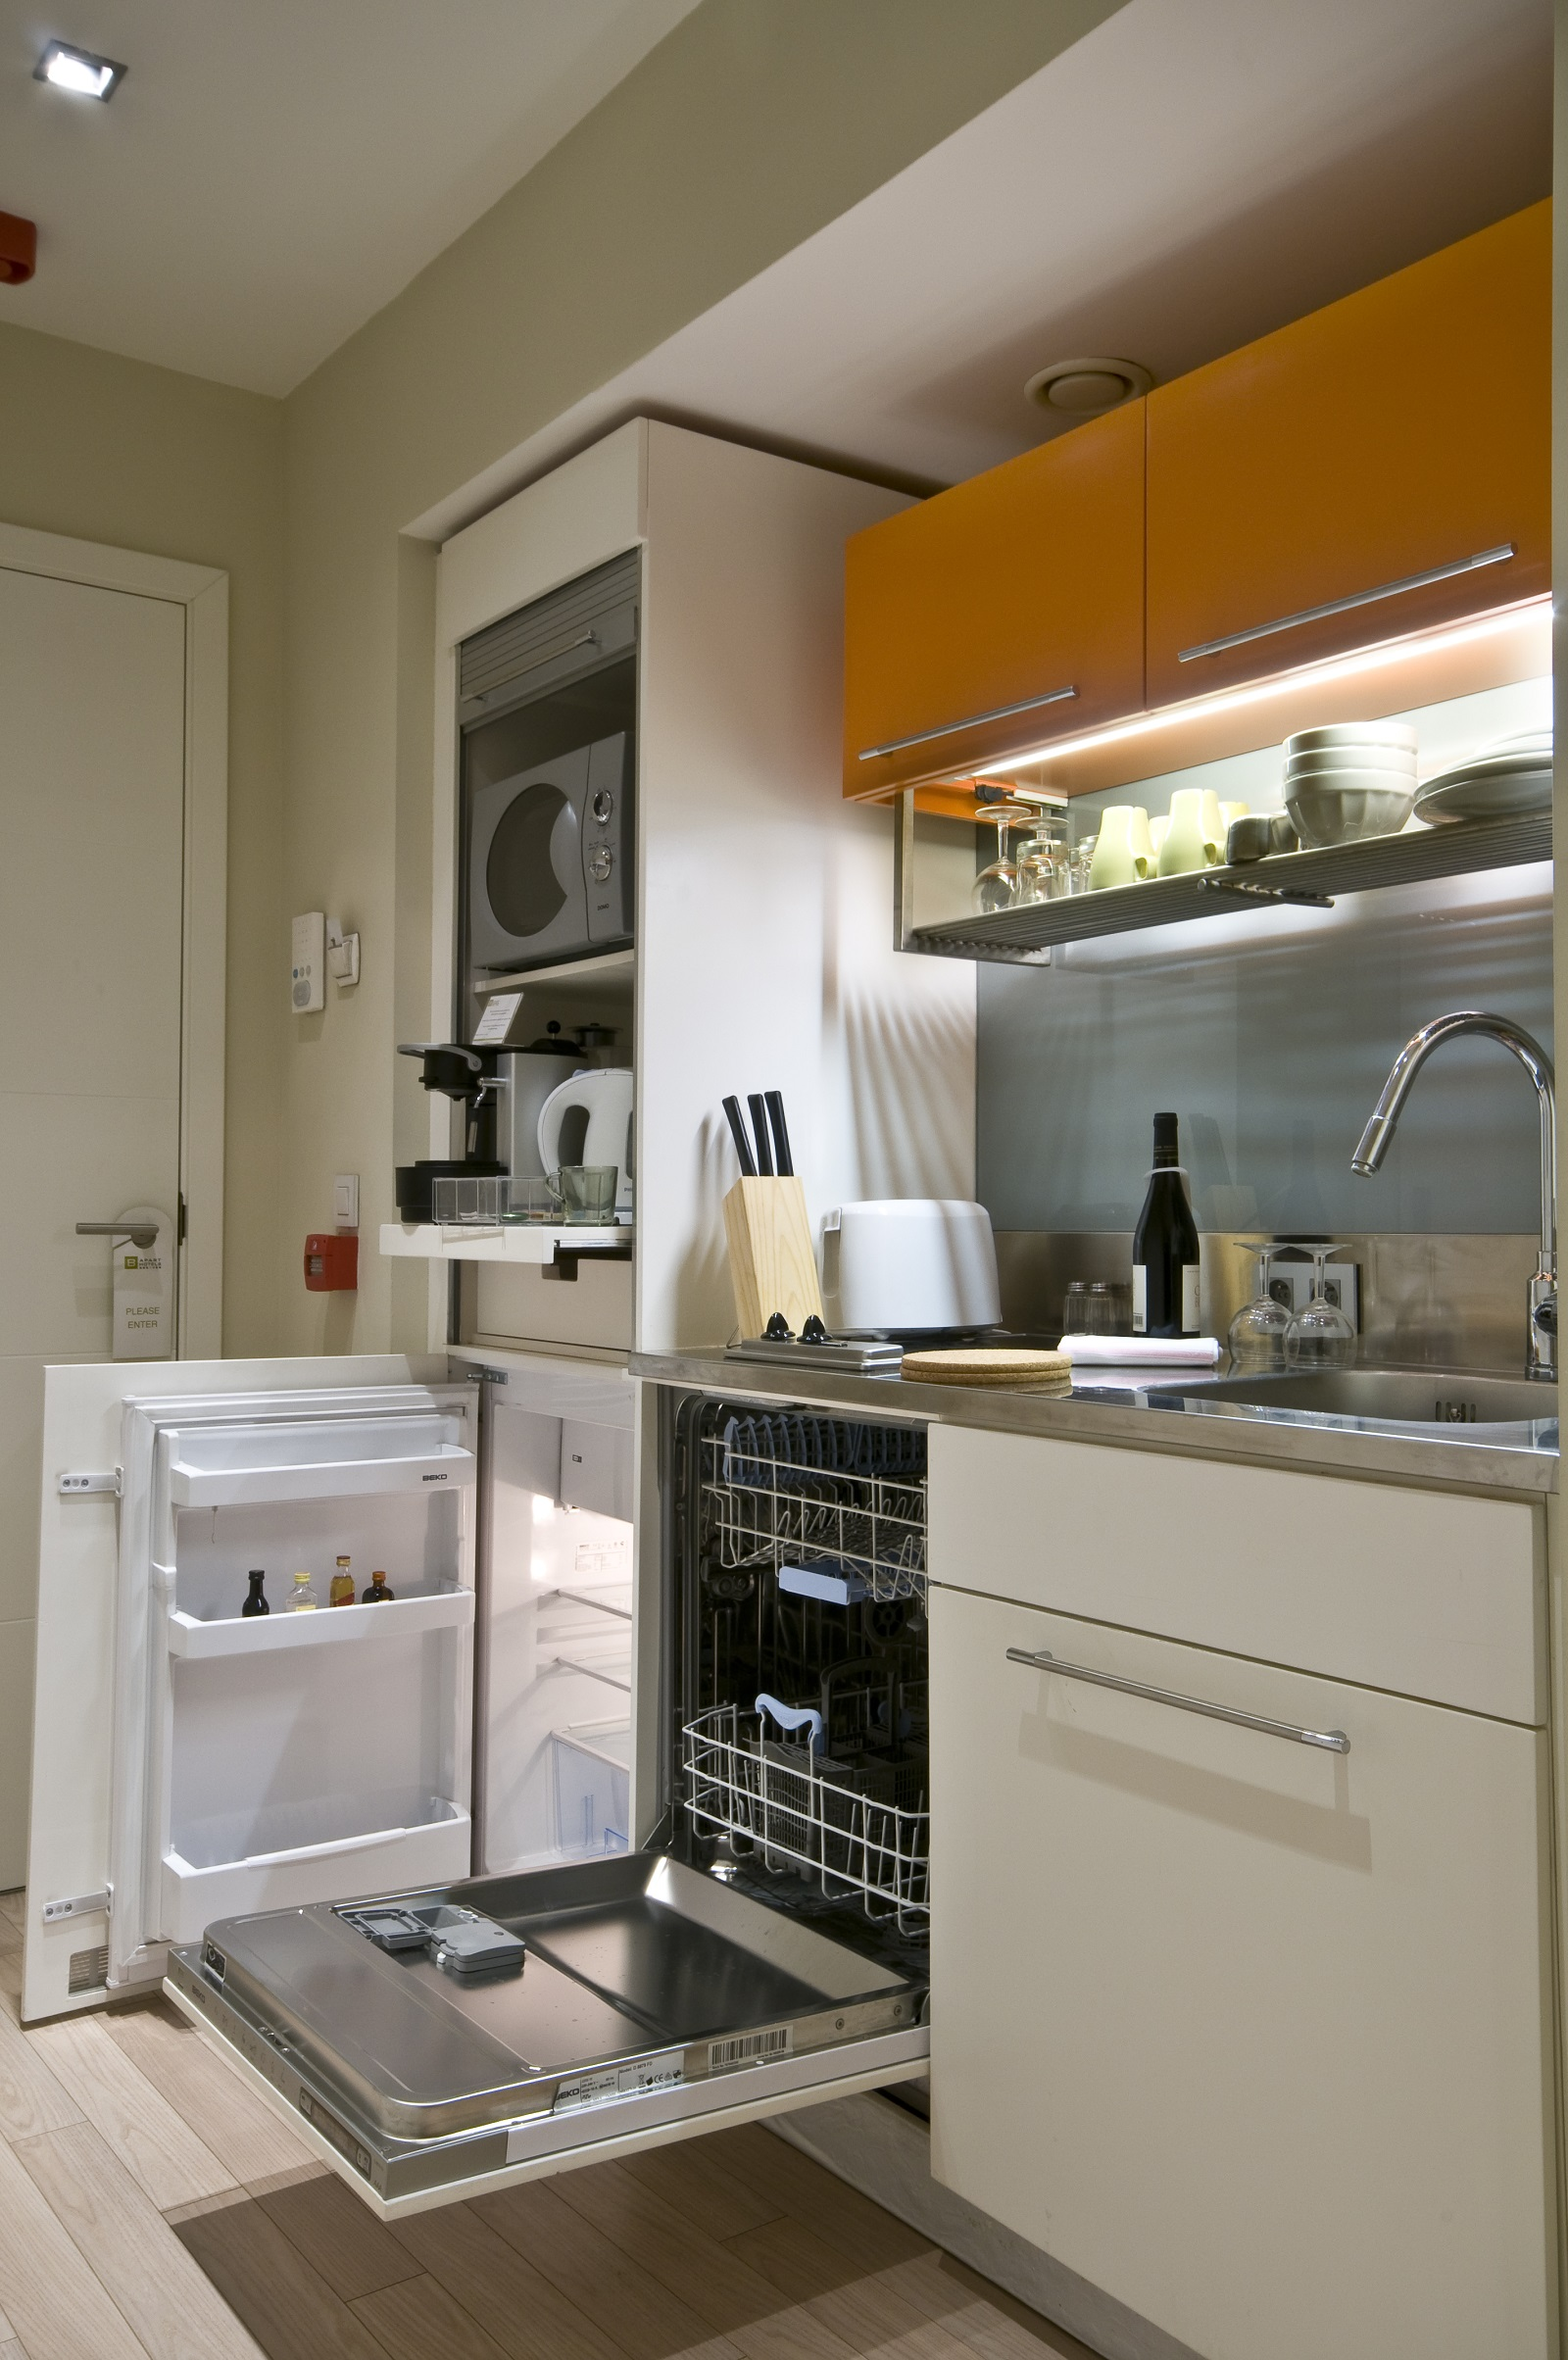 104/Grand-Place/Grand Place - Kitchen Apartment.jpg